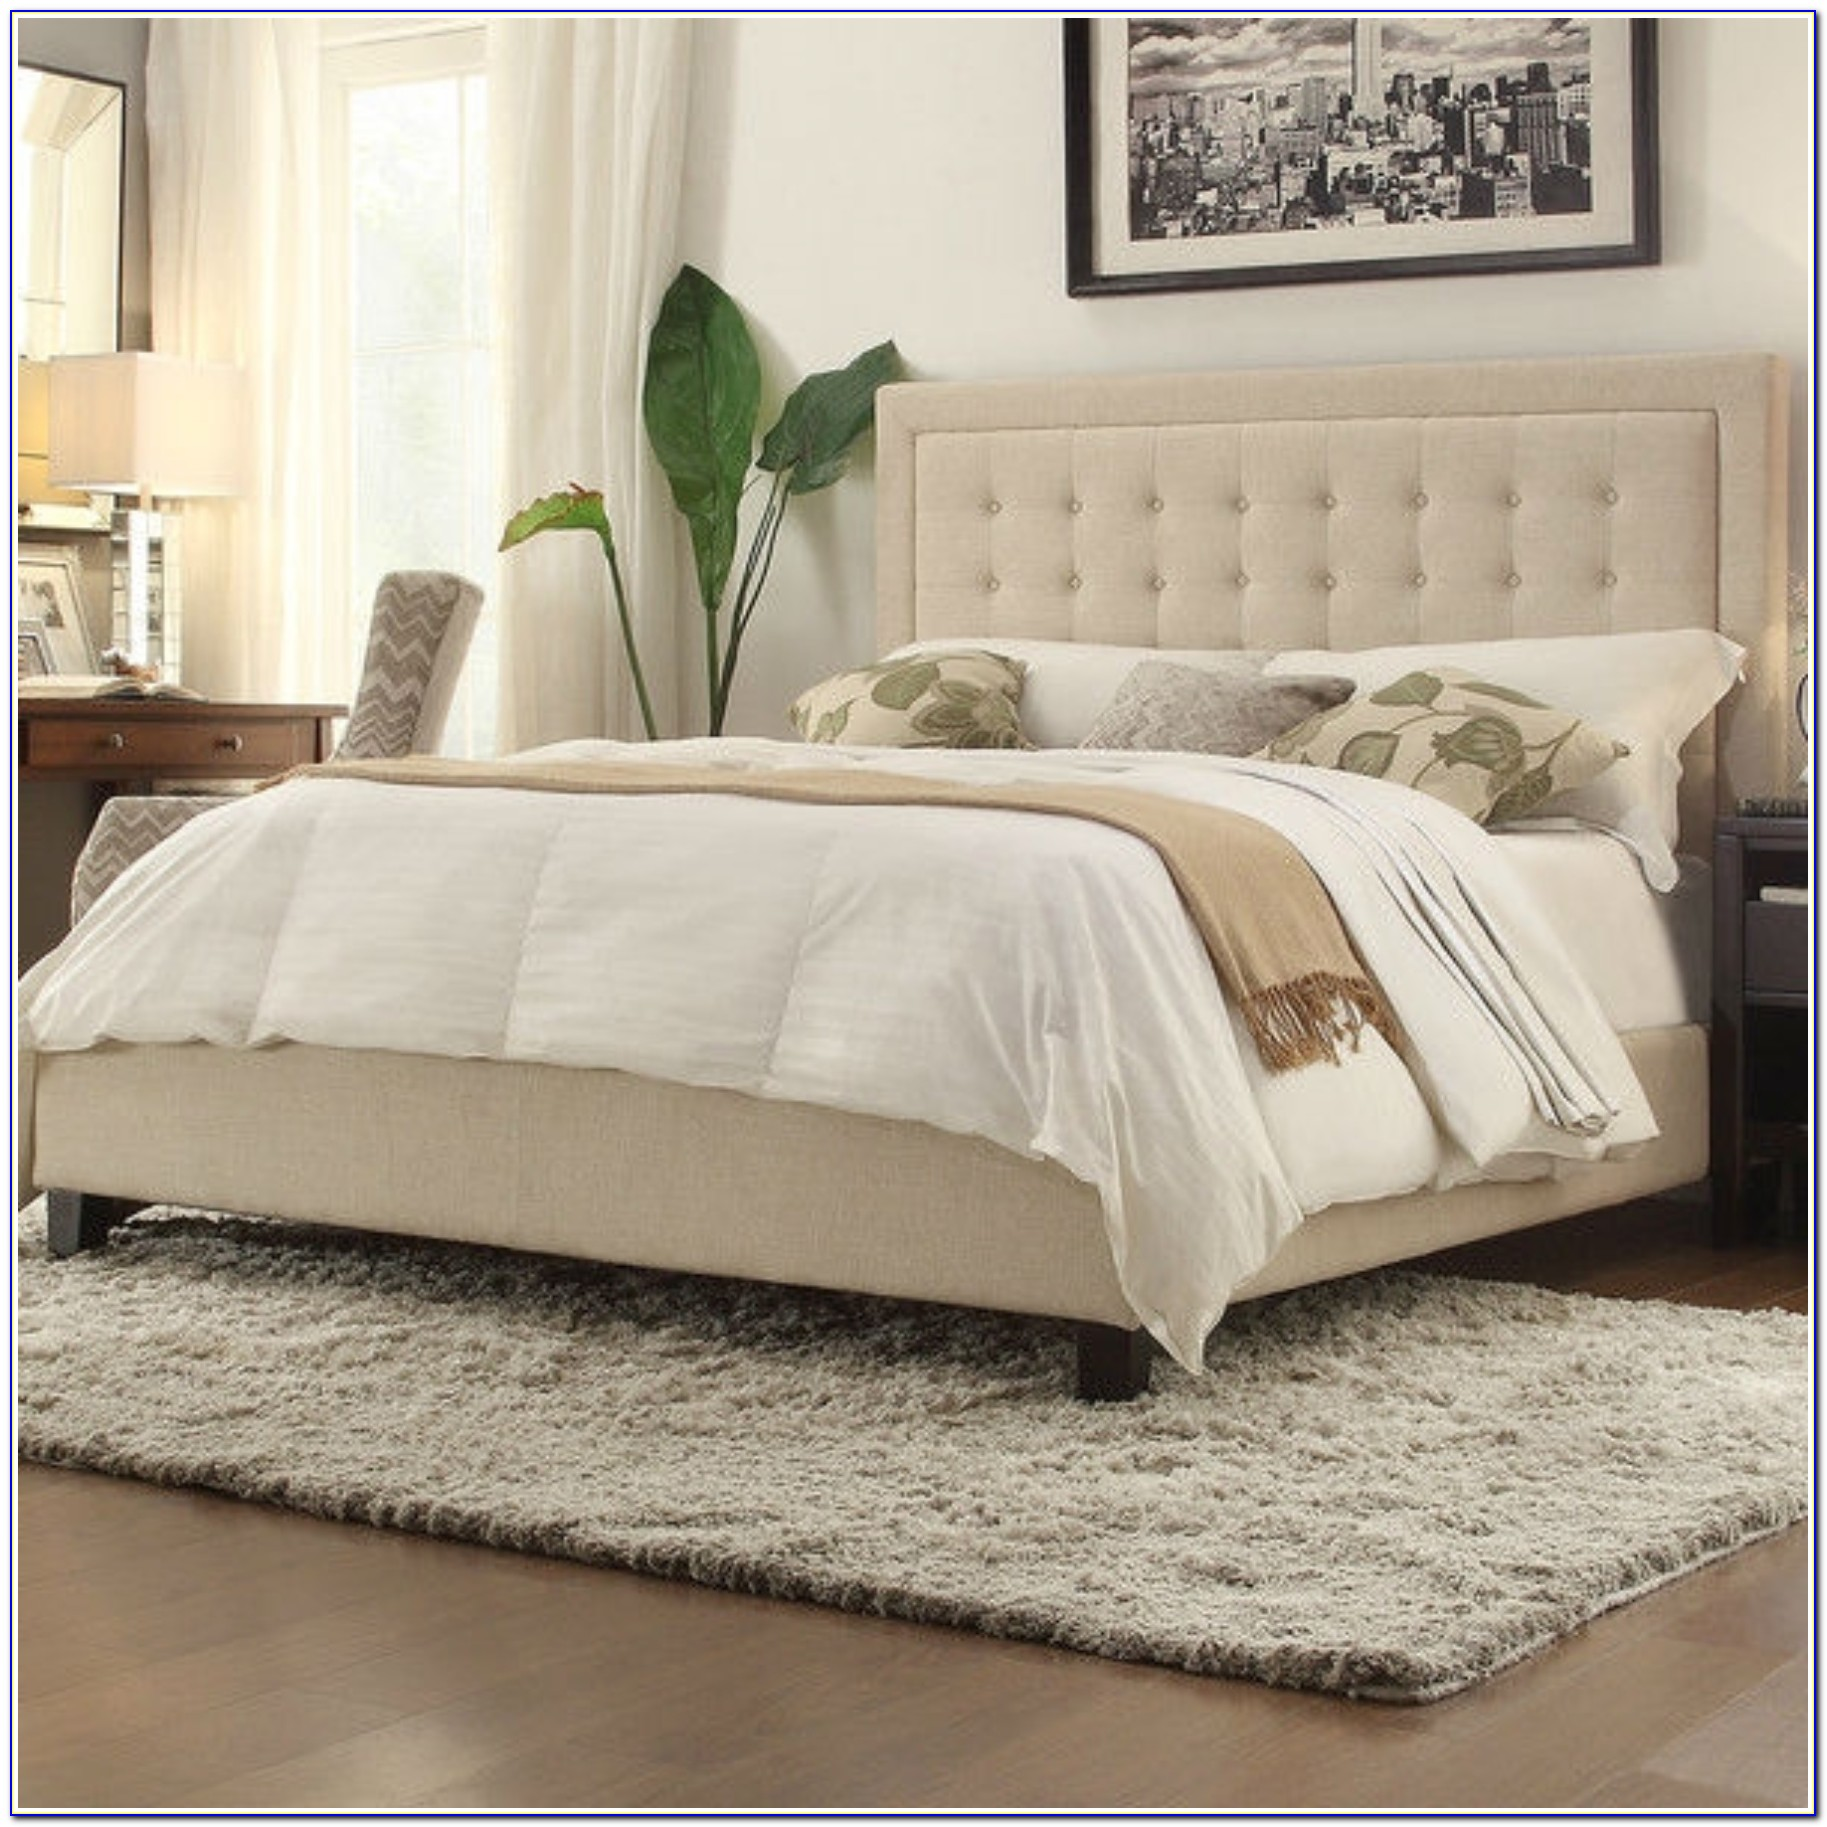 King Size Headboards And Footboards For Adjustable Beds